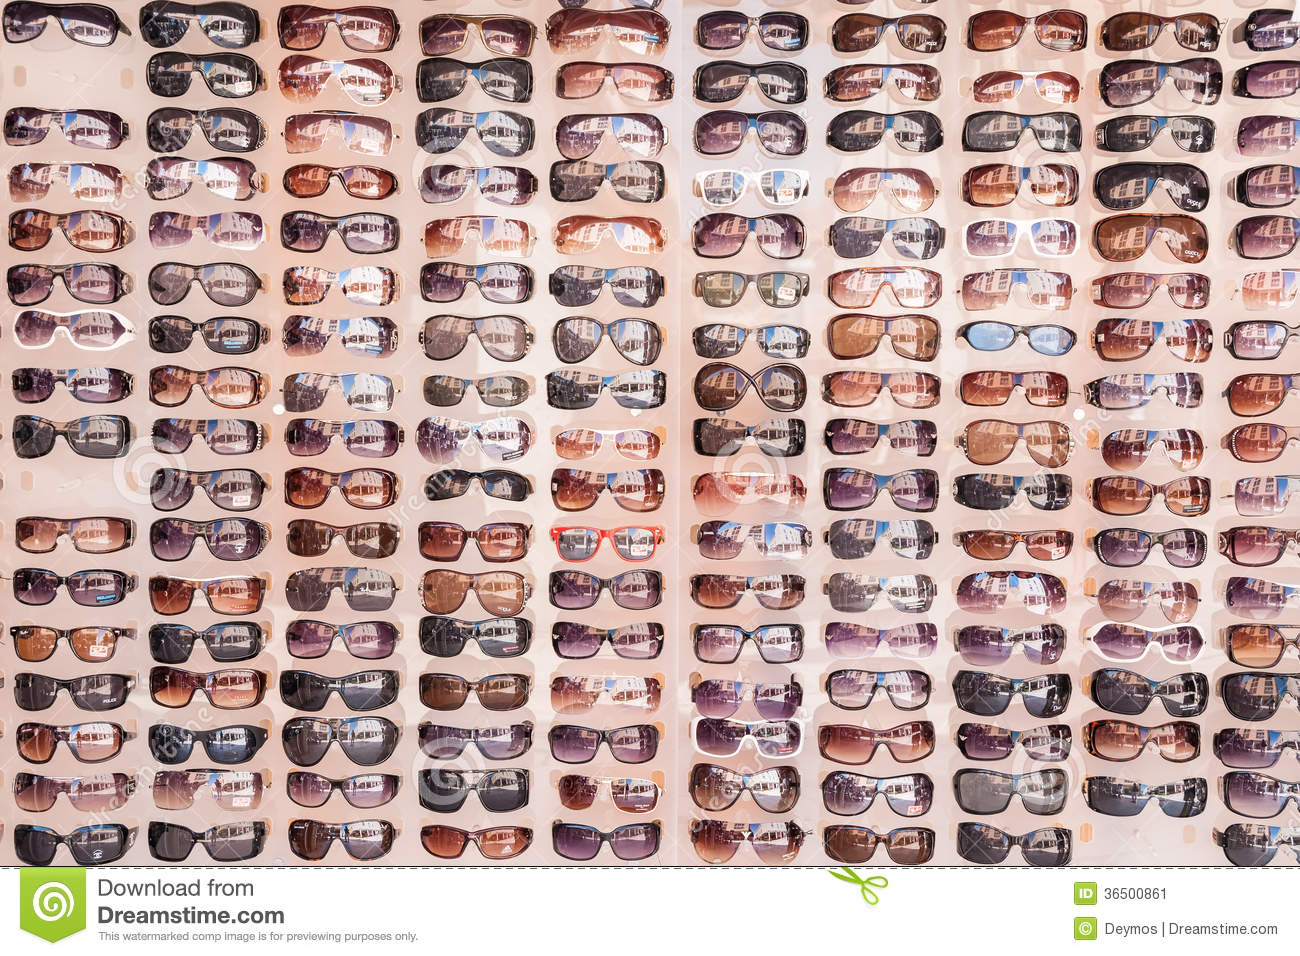 45028efb060 Sunglasses Display Market Stock Images - Download 367 Royalty Free Photos